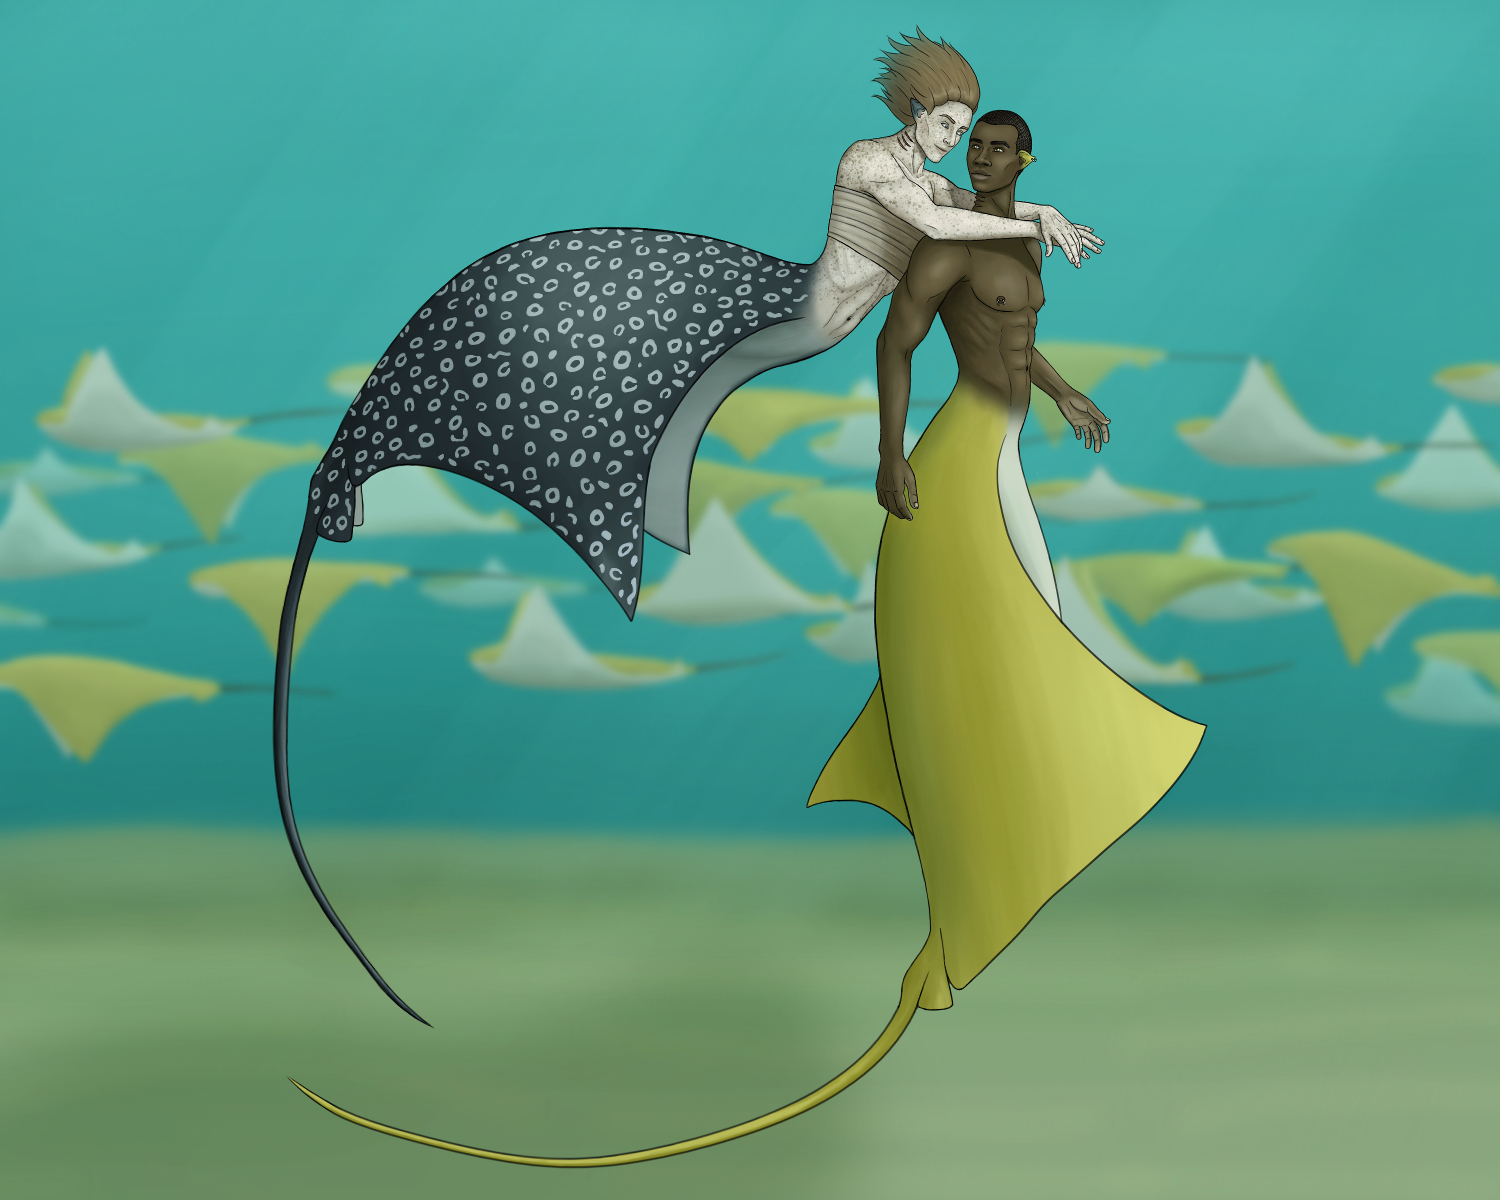 Digital painting of two mermen underwater with stingray tails. One is swimming up behind the other to hug him from behind. The other is fully vertical and turning to see behind him. Their faces are inches apart. Both are smiling. The swimming one is light skinned with lots of freckles, chin-length reddish brown hair flowing behind him, and a tan fabric wrapped tightly around his chest as a binder. His tail is dark grey with white spots, like a spotted eagle ray. The turning merman is dark-skinned with a shaved head, a muscular body, curved white piercings in his ear lobe and nipples, and a golden tail like a cownose stingray. They're in teal water with cownose stingrays swimming by in the background.